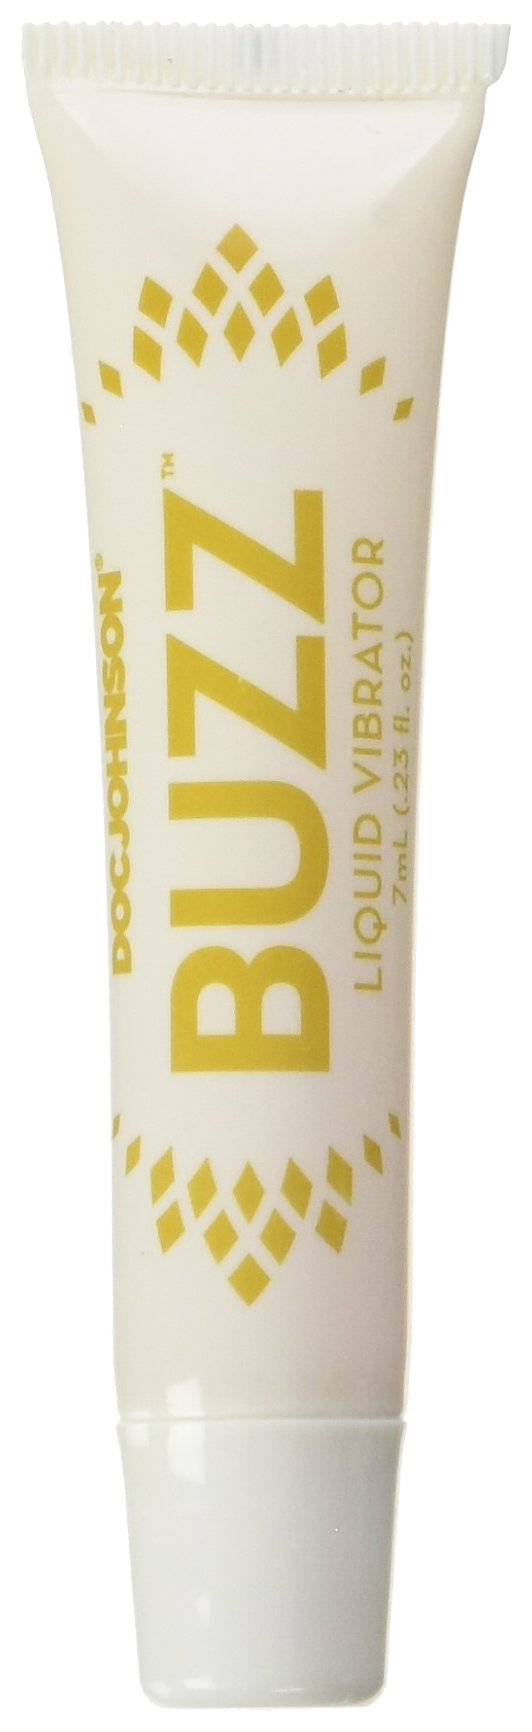 Doc Johnson Buzz Liquid Vibrator - Intimate Arousal Gel - Designed to Enhance a Woman's Sexual Sensations, Arousal, and Pleasusre - Gel Stays Where You Want It - 7 ml (0.23 fl. oz.)